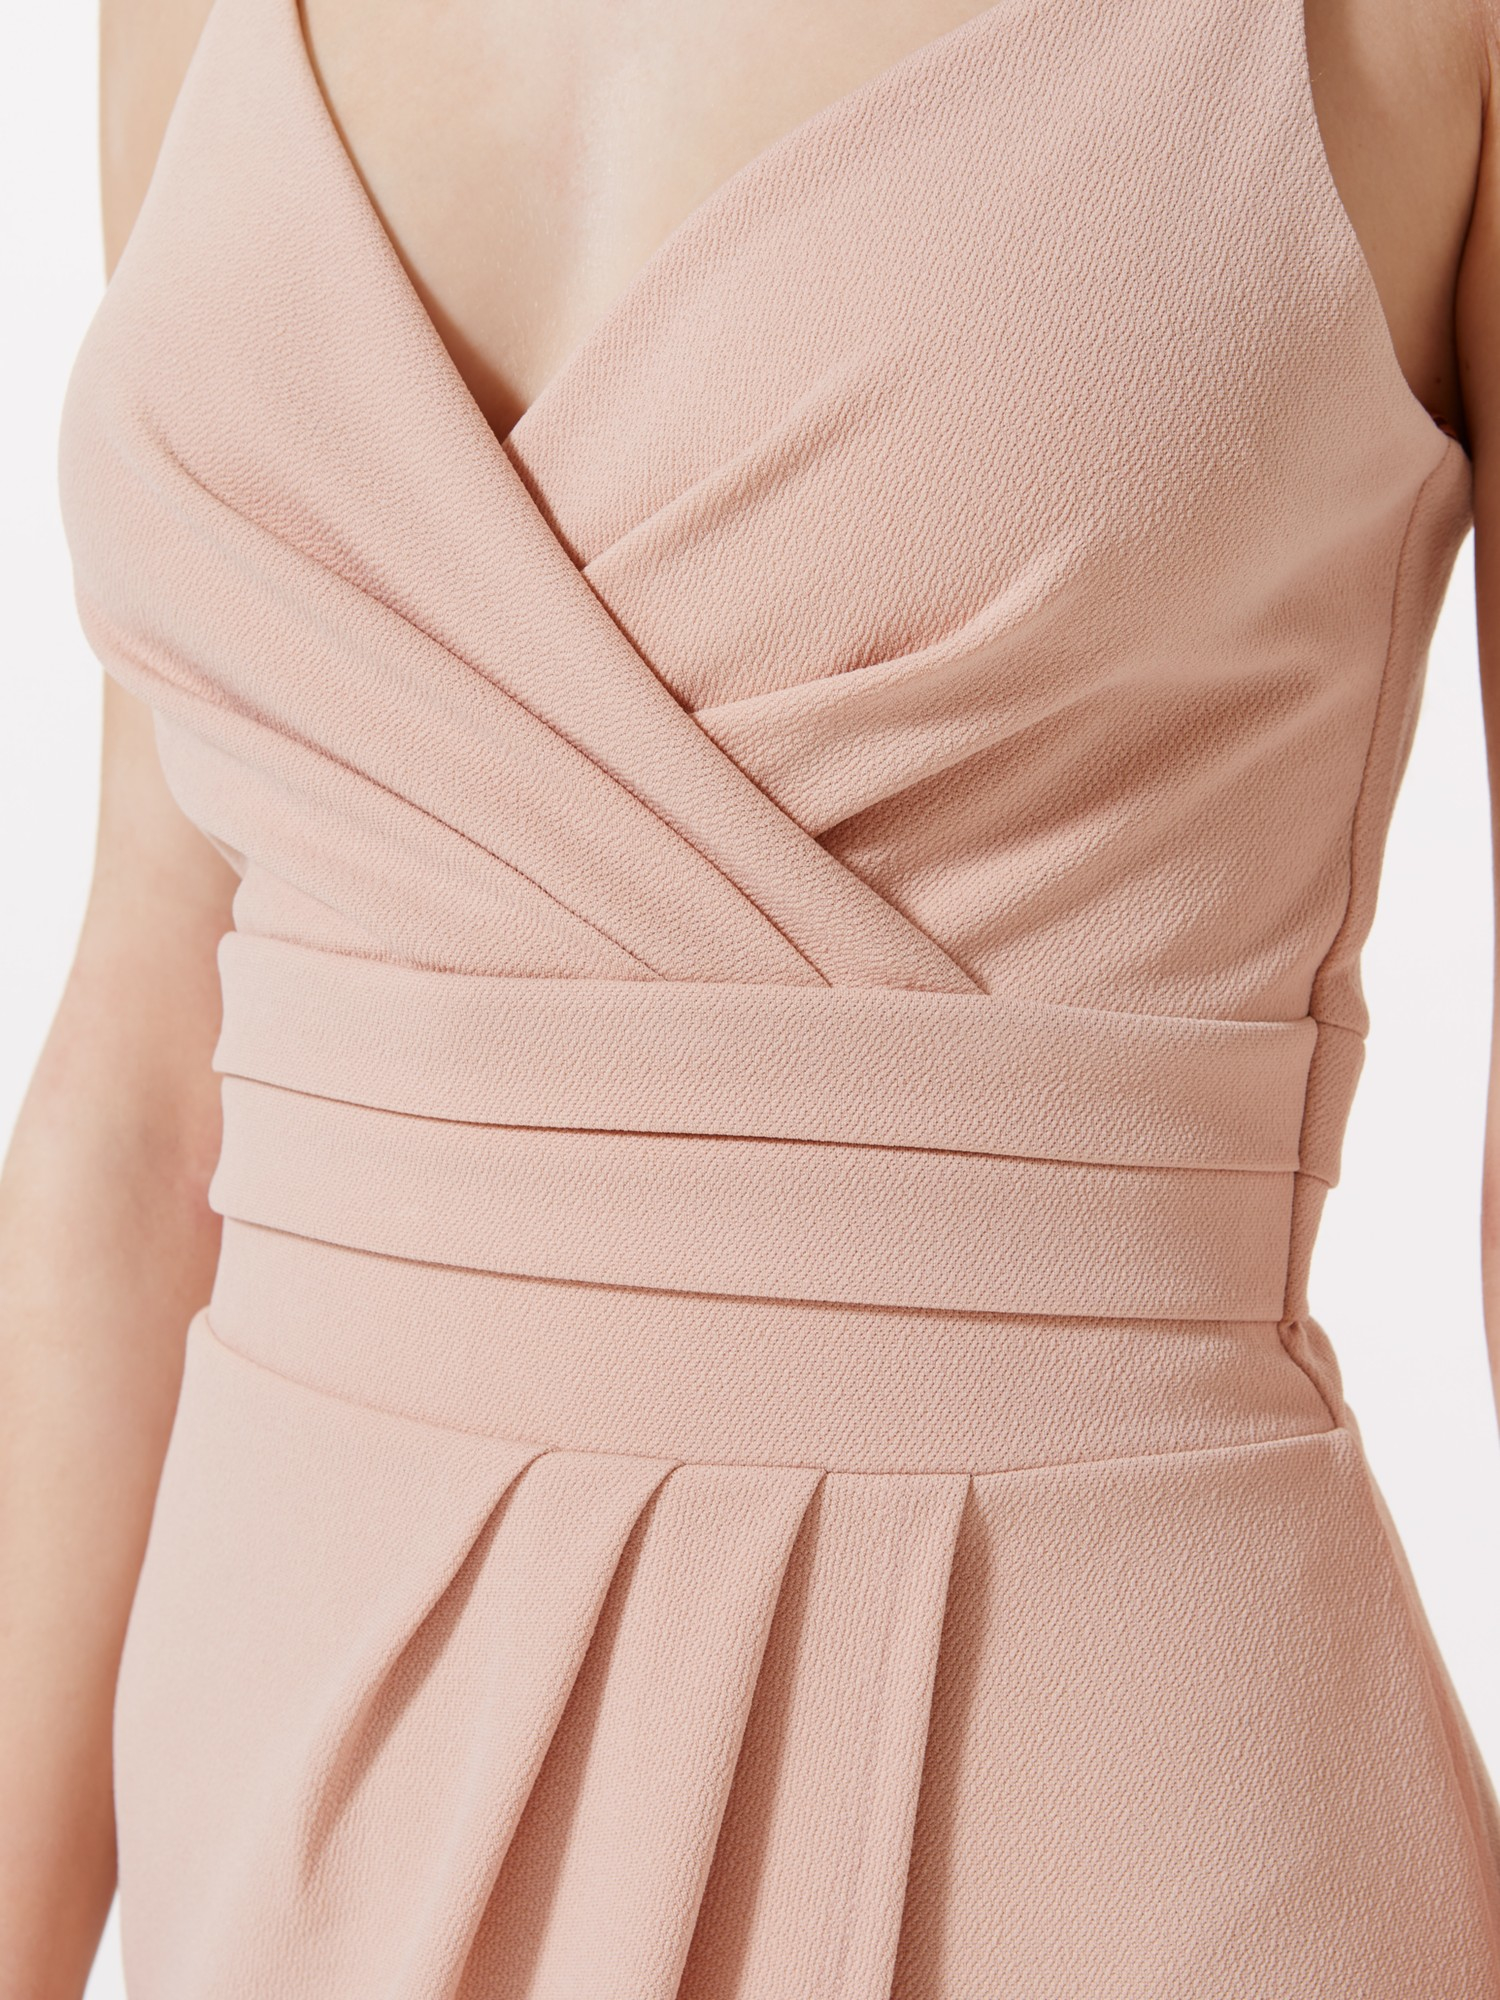 Miss Selfridge Strappy Pencil Wrap Dress in Natural - Lyst